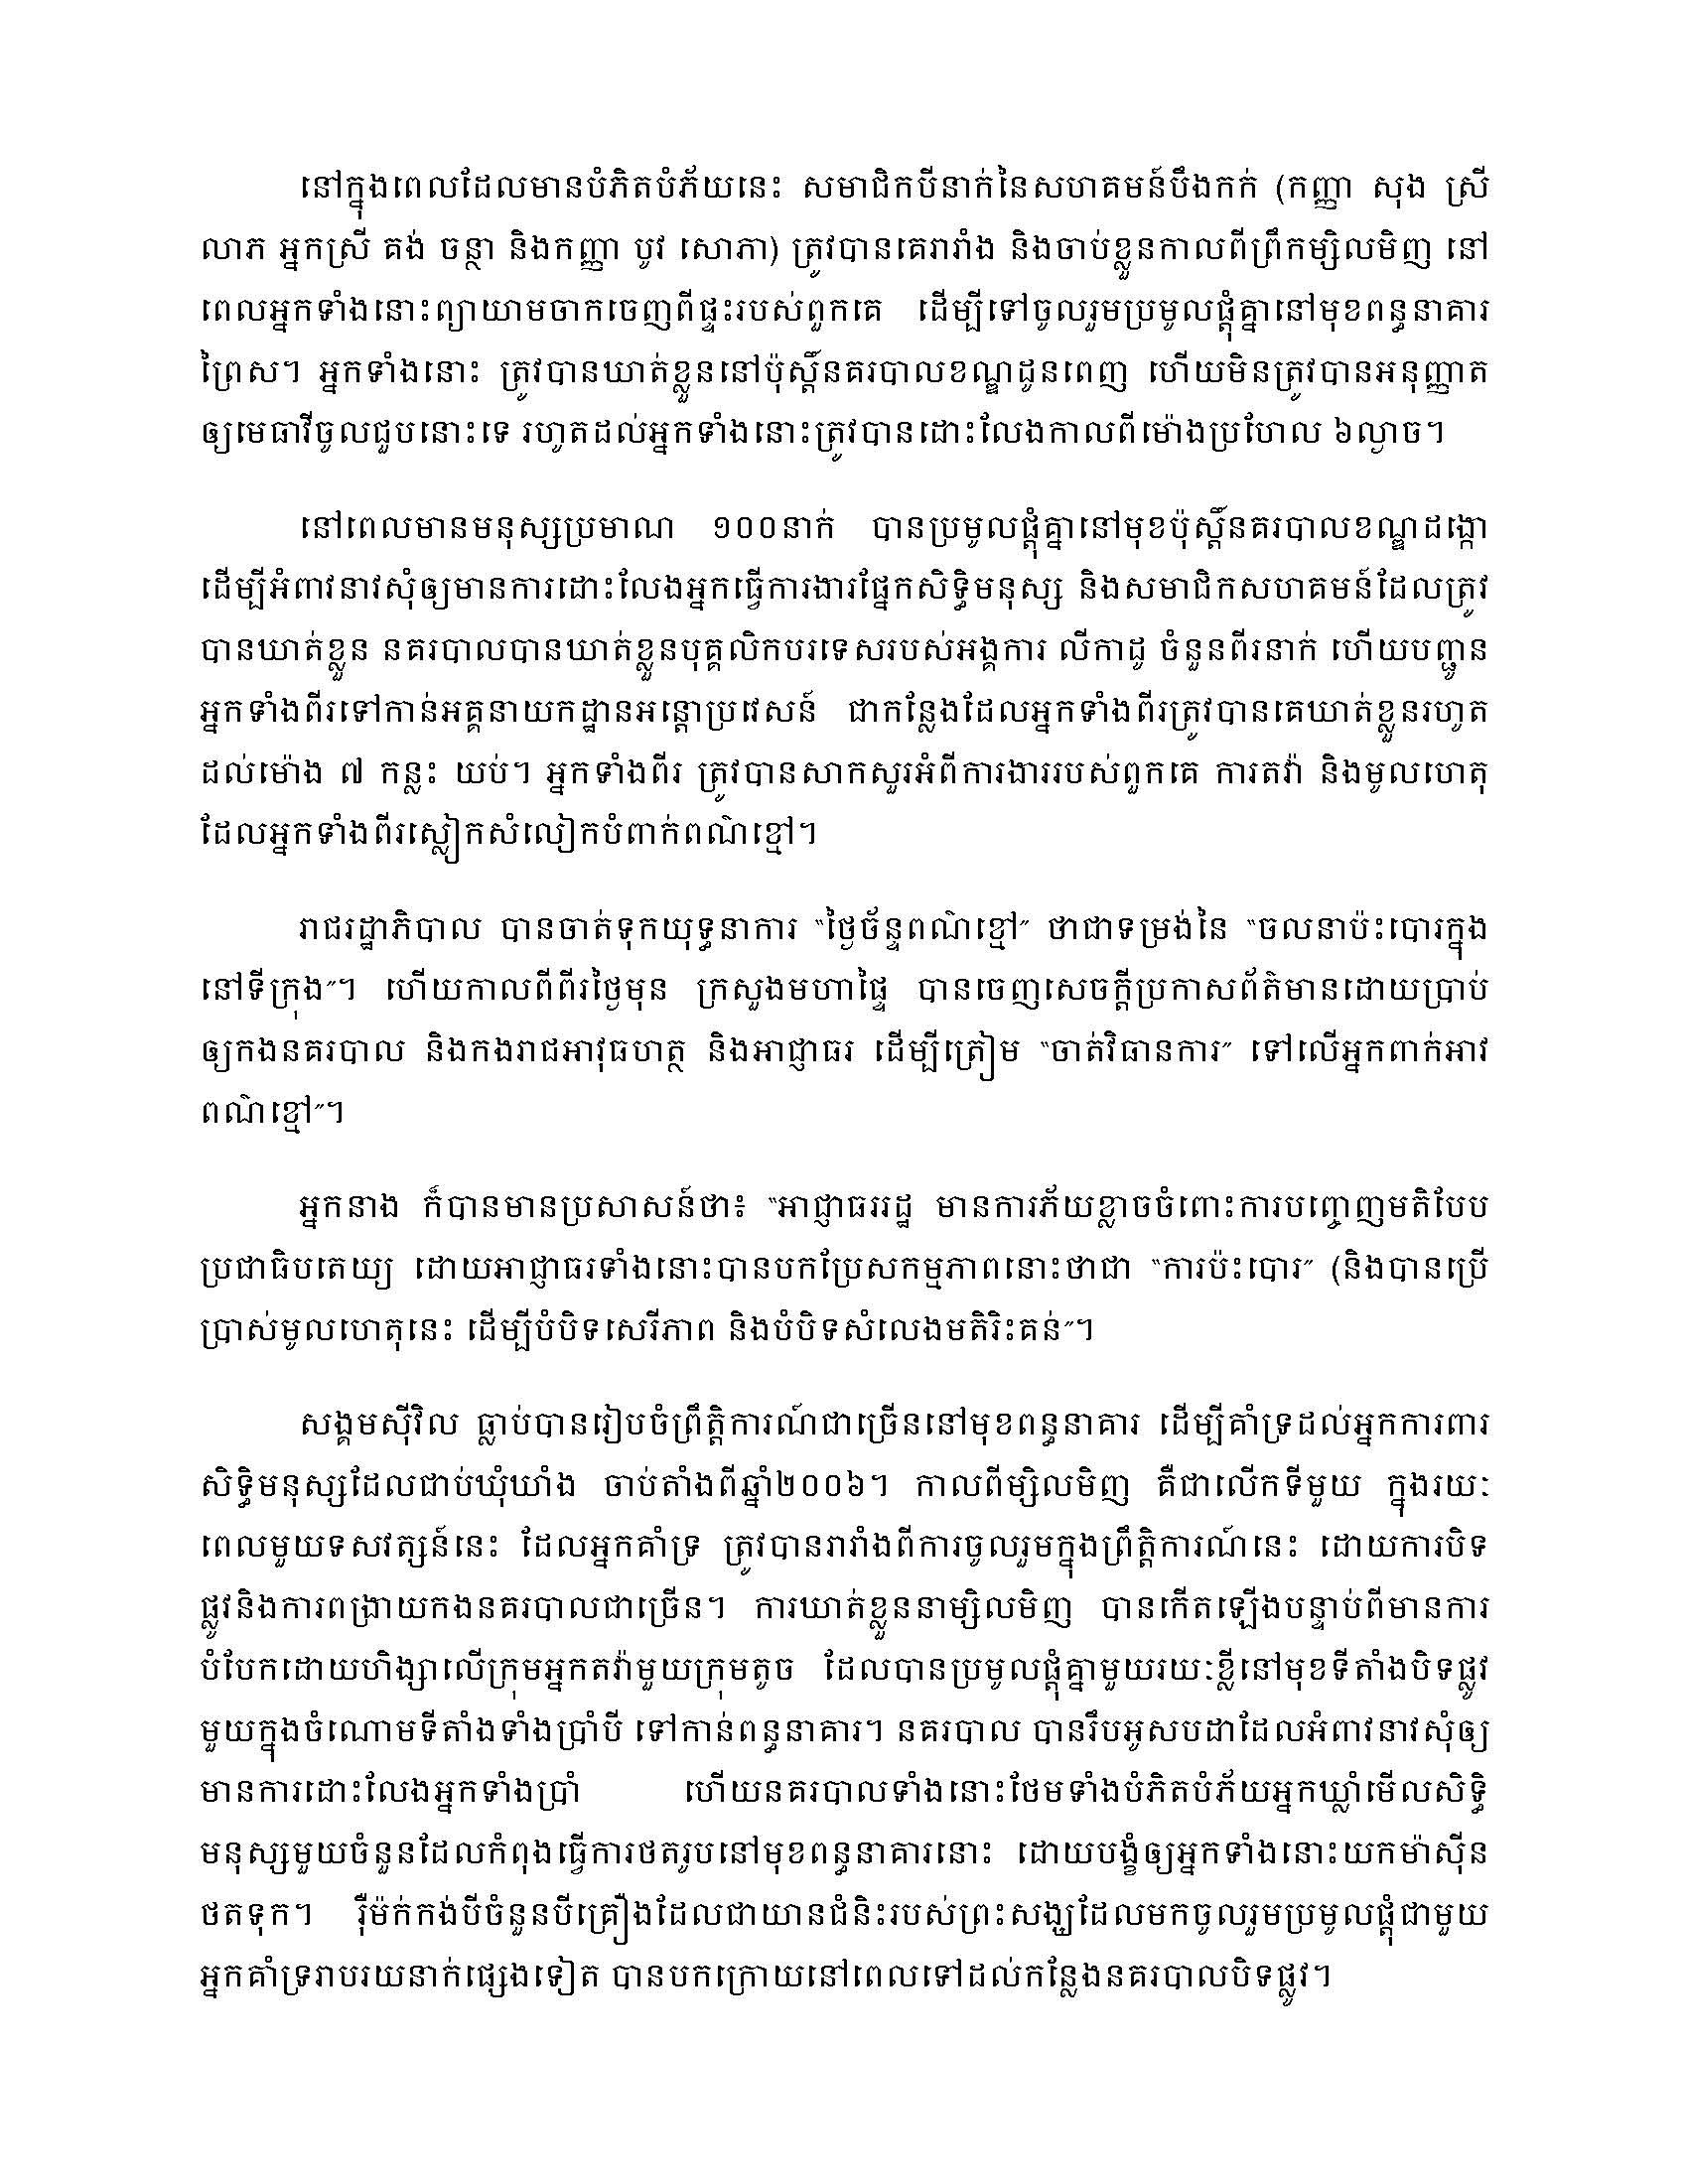 405kCivil_society_condemns_intimidation_KH_Page_2